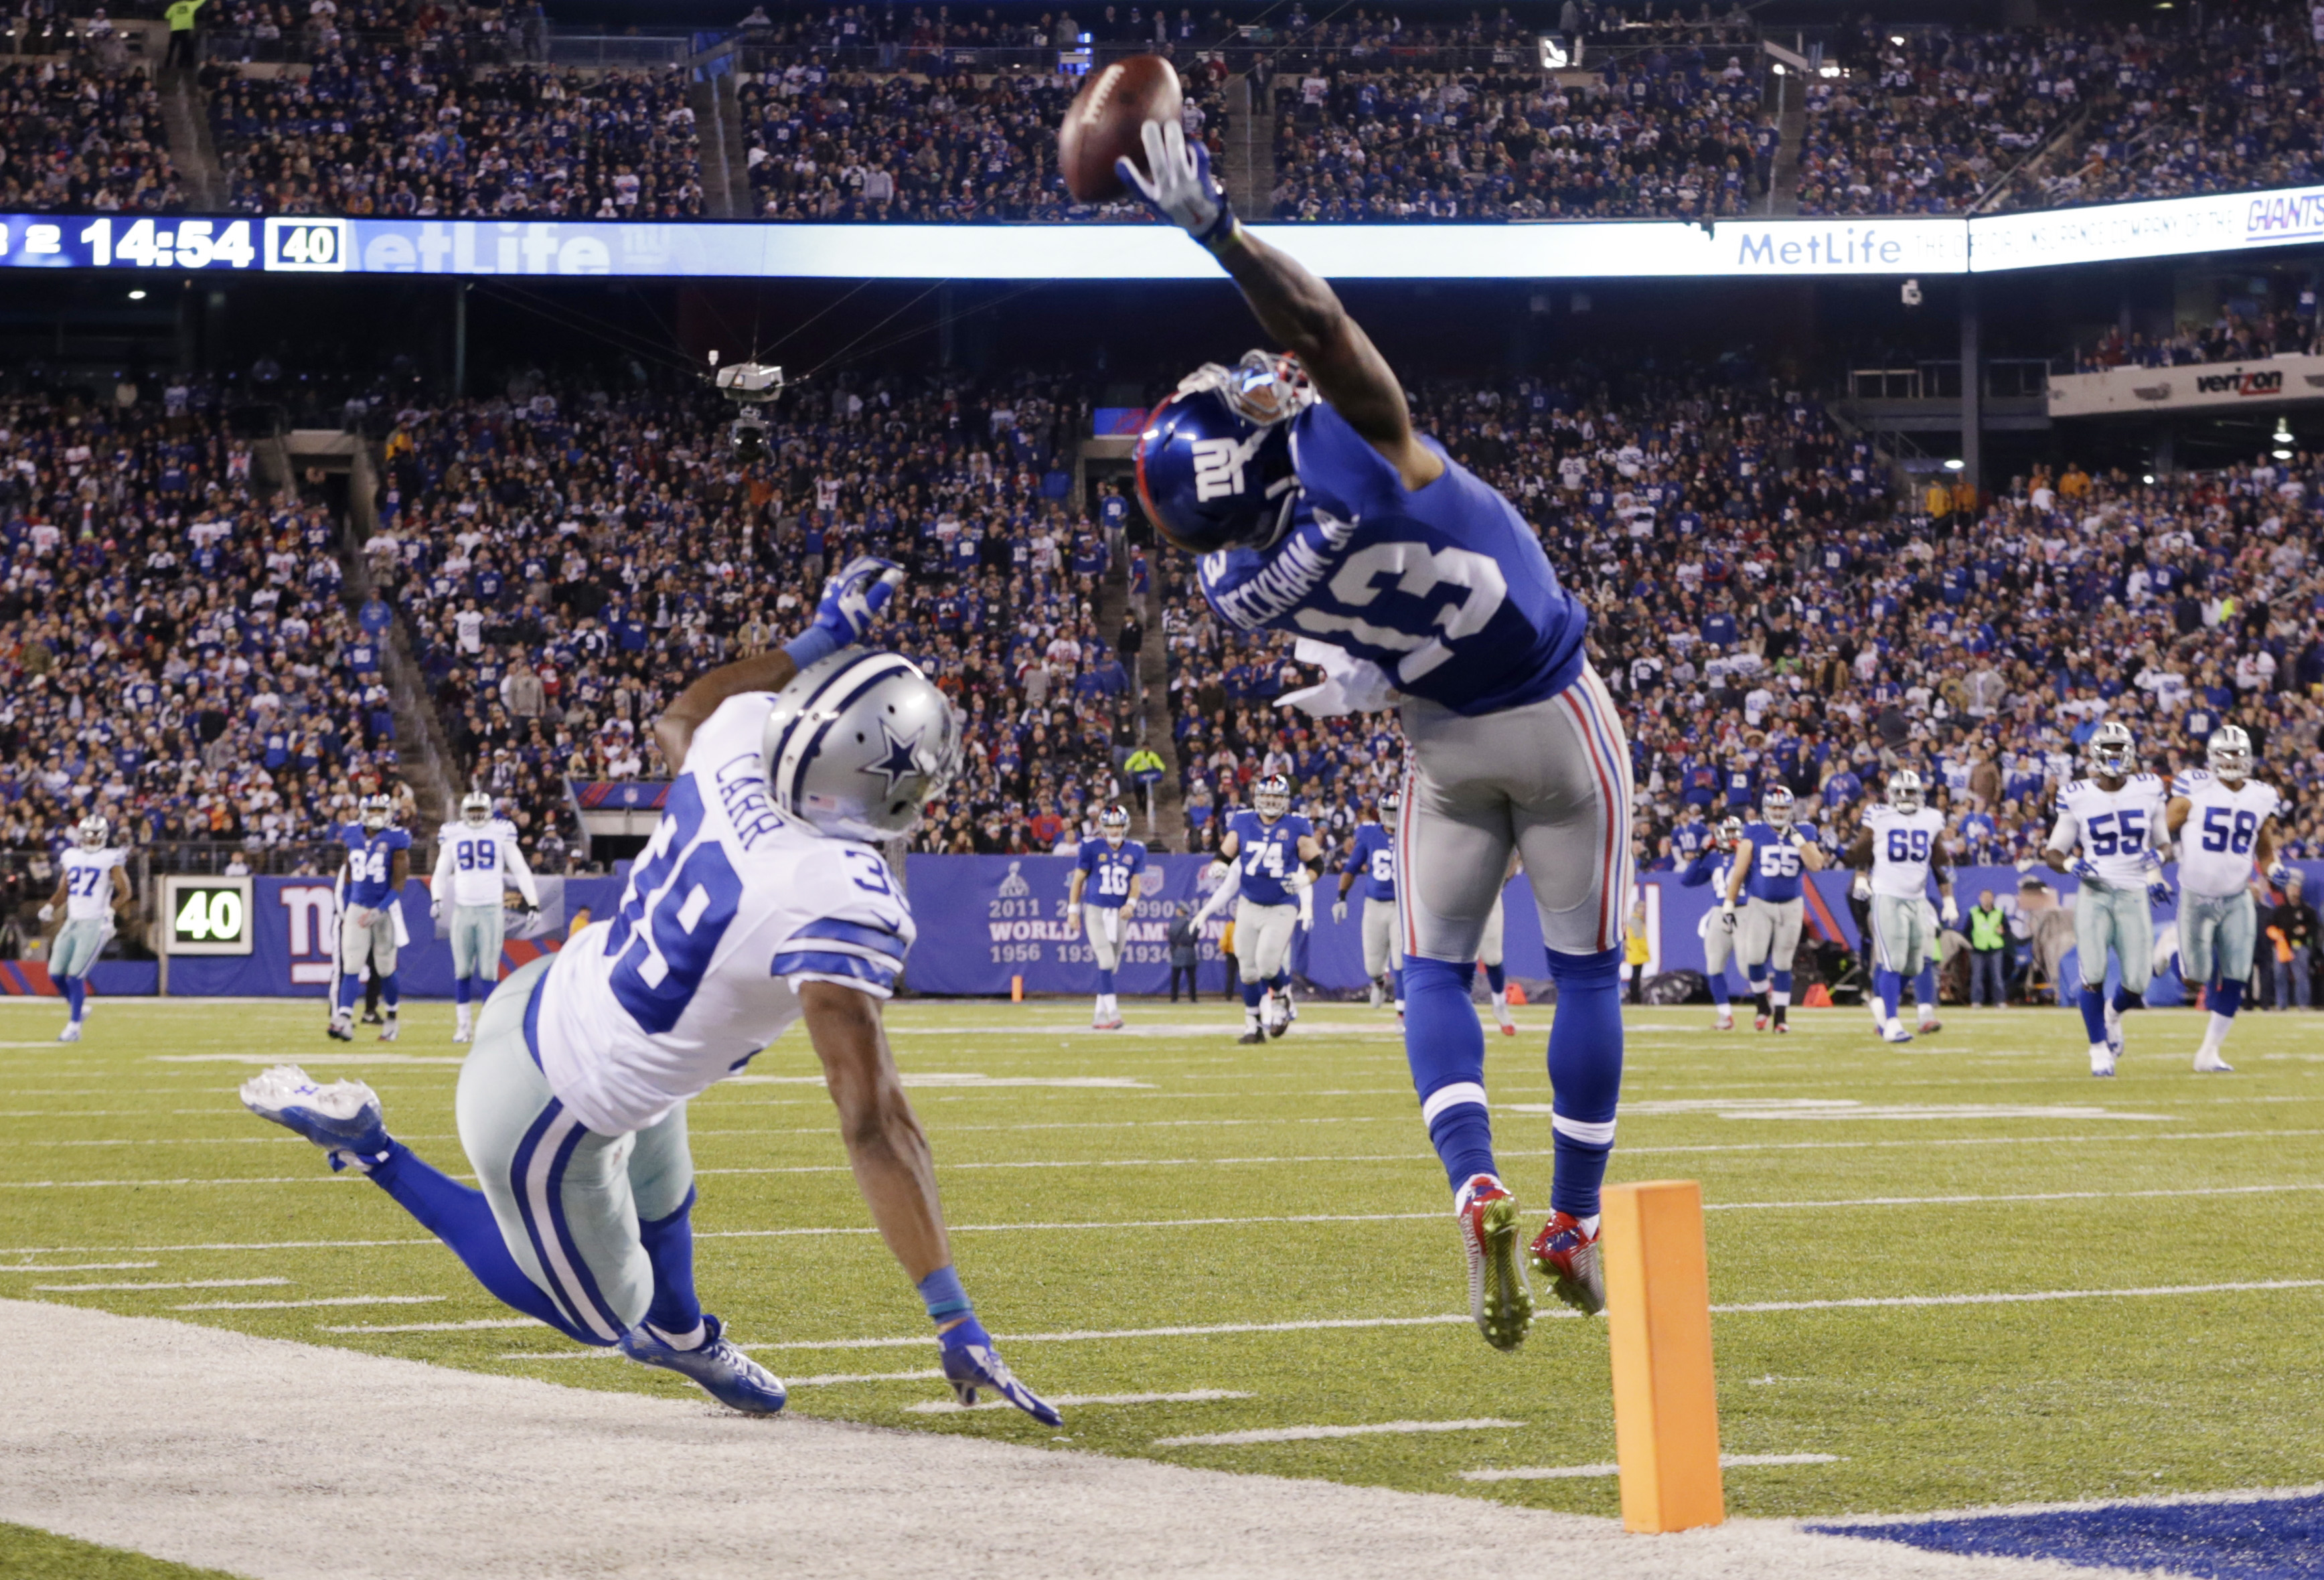 FILE - In this Nov. 23, 2014, file photo, New York Giants wide receiver Odell Beckham Jr. (13) makes a one-handed catch for a touchdown against Dallas Cowboys cornerback Brandon Carr (39) in the second quarter of an NFL football game in East Rutherford, N